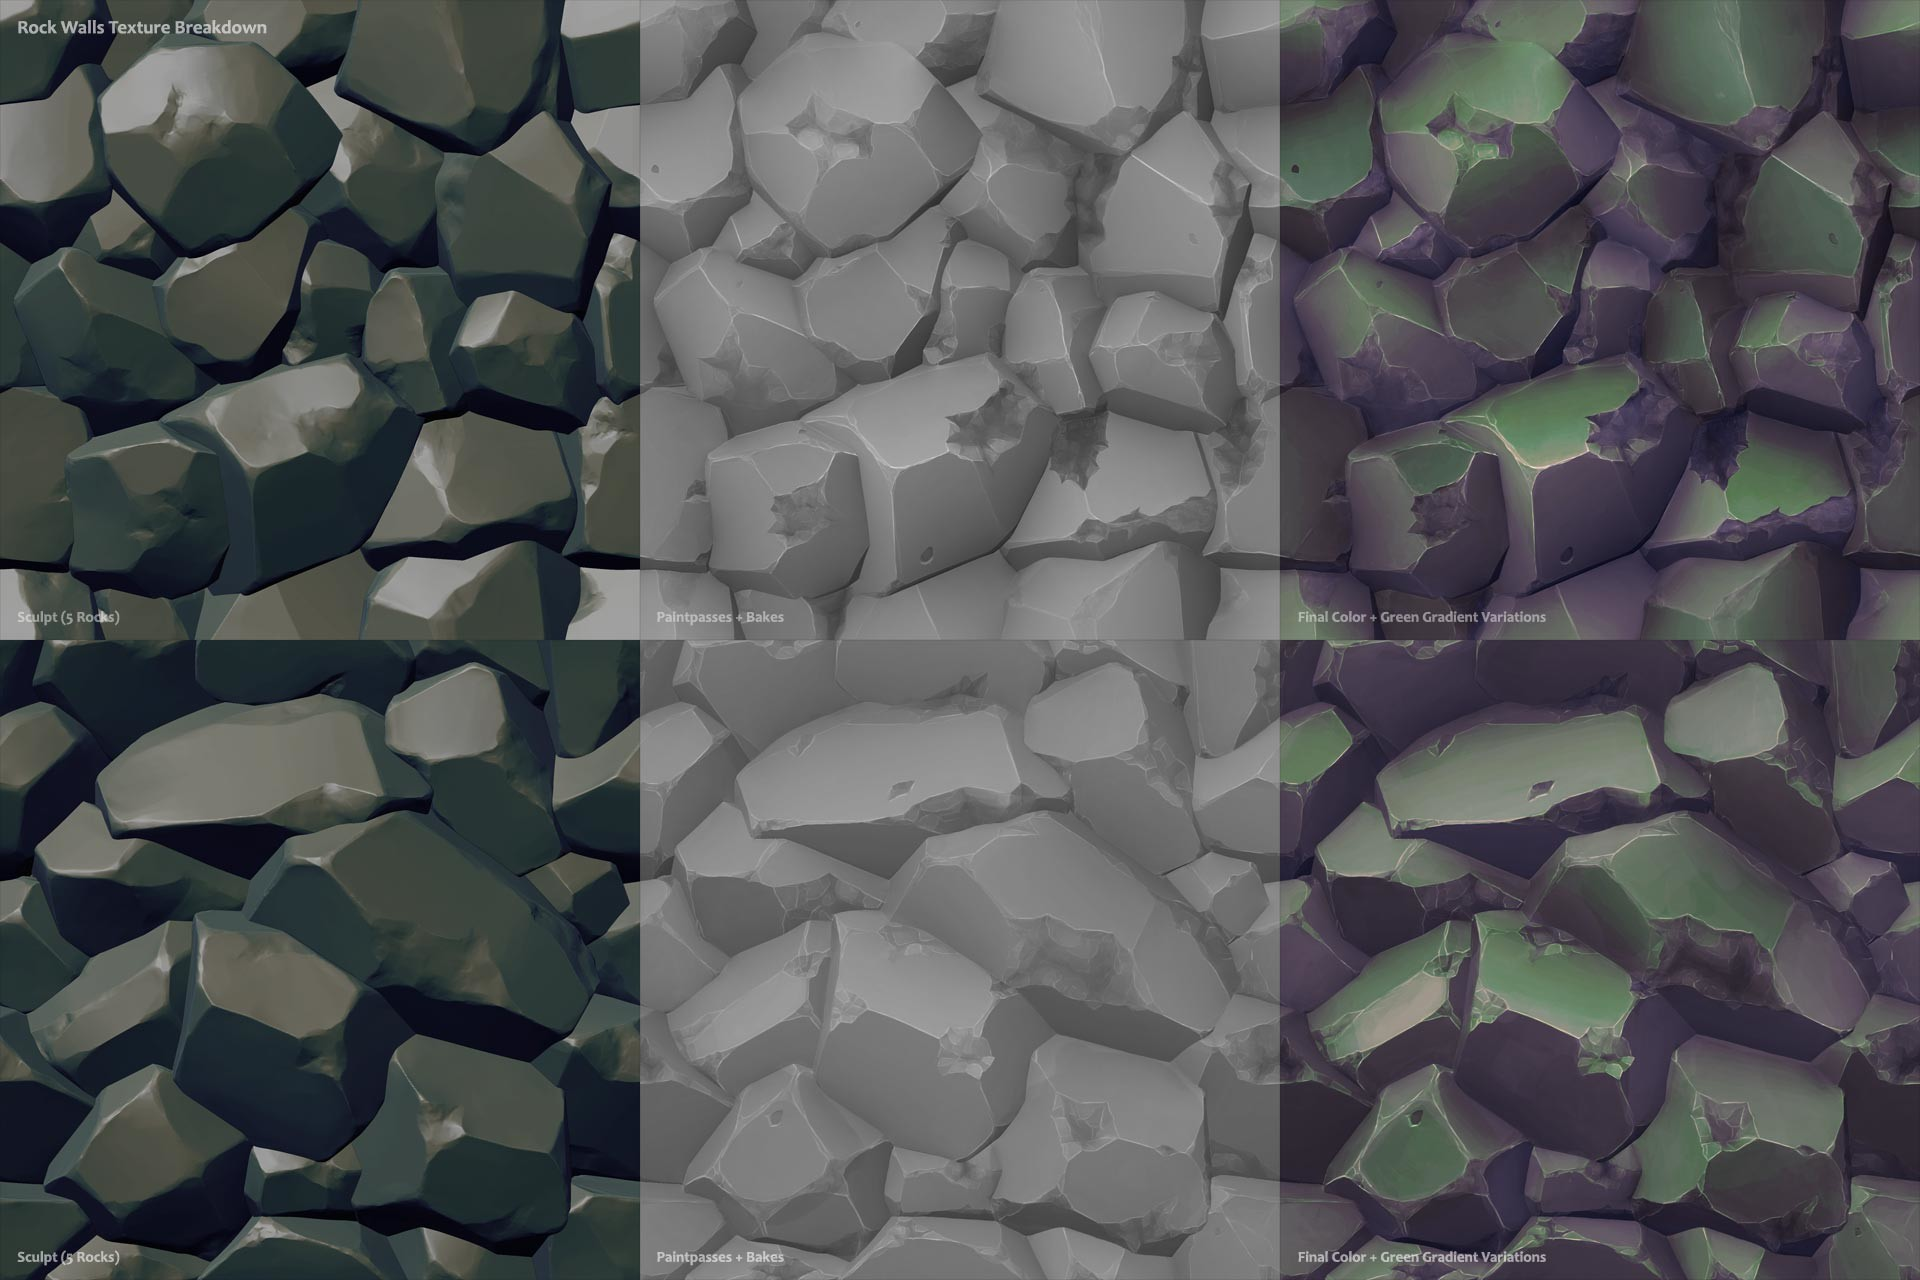 Anthony garcellano tileablerockwalls texturesbreakdown anthonygarcellano